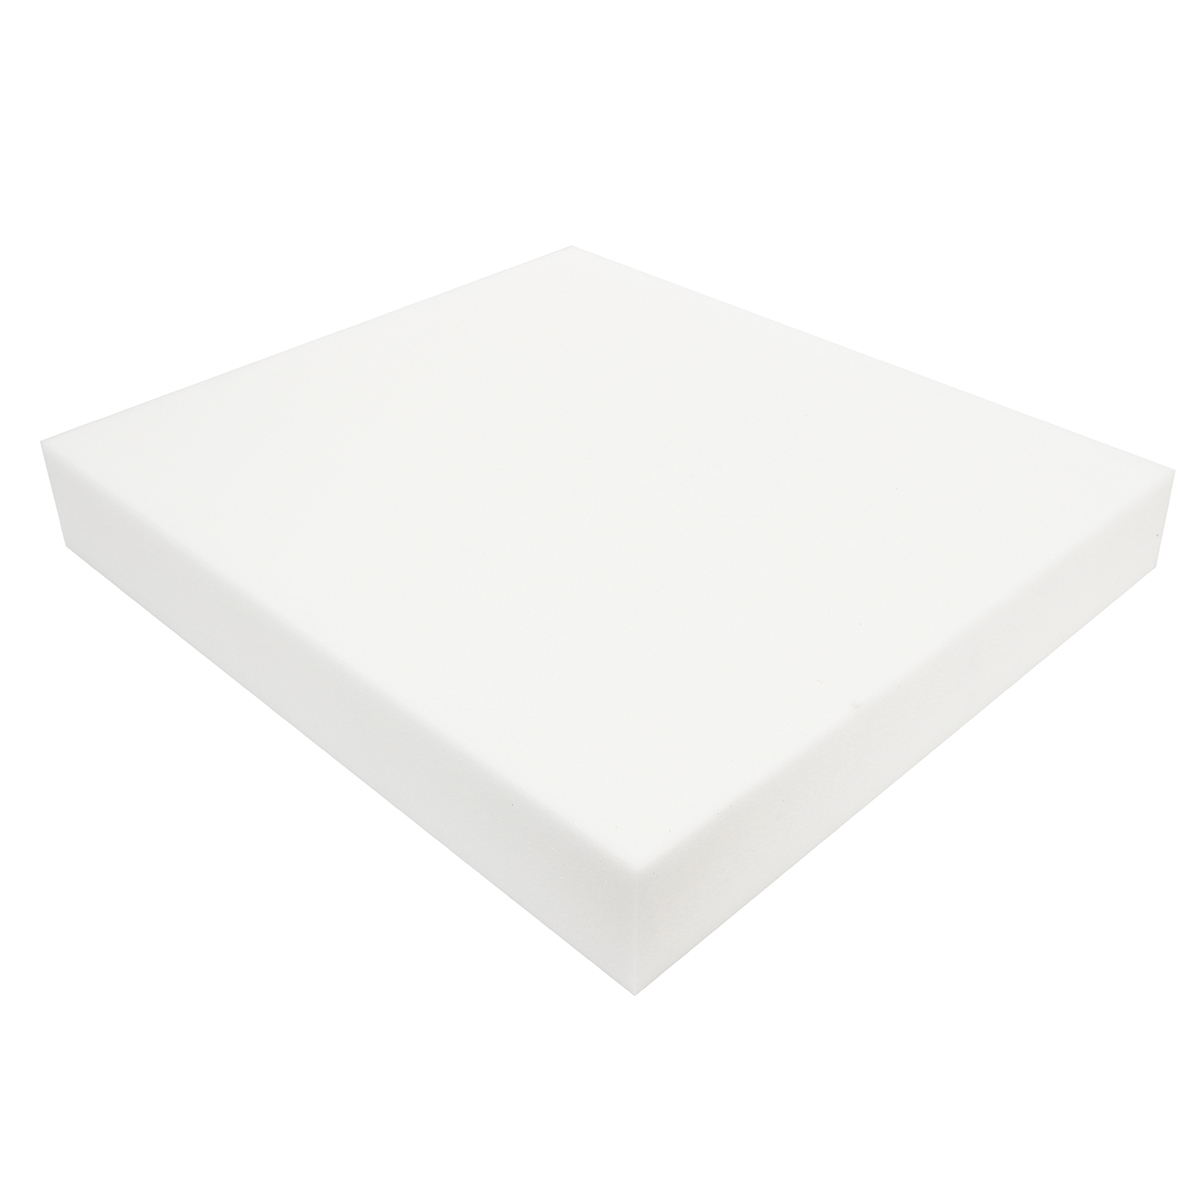 foam for sofa seat cushions small office design 55x55cm high density upholstery cushion chair